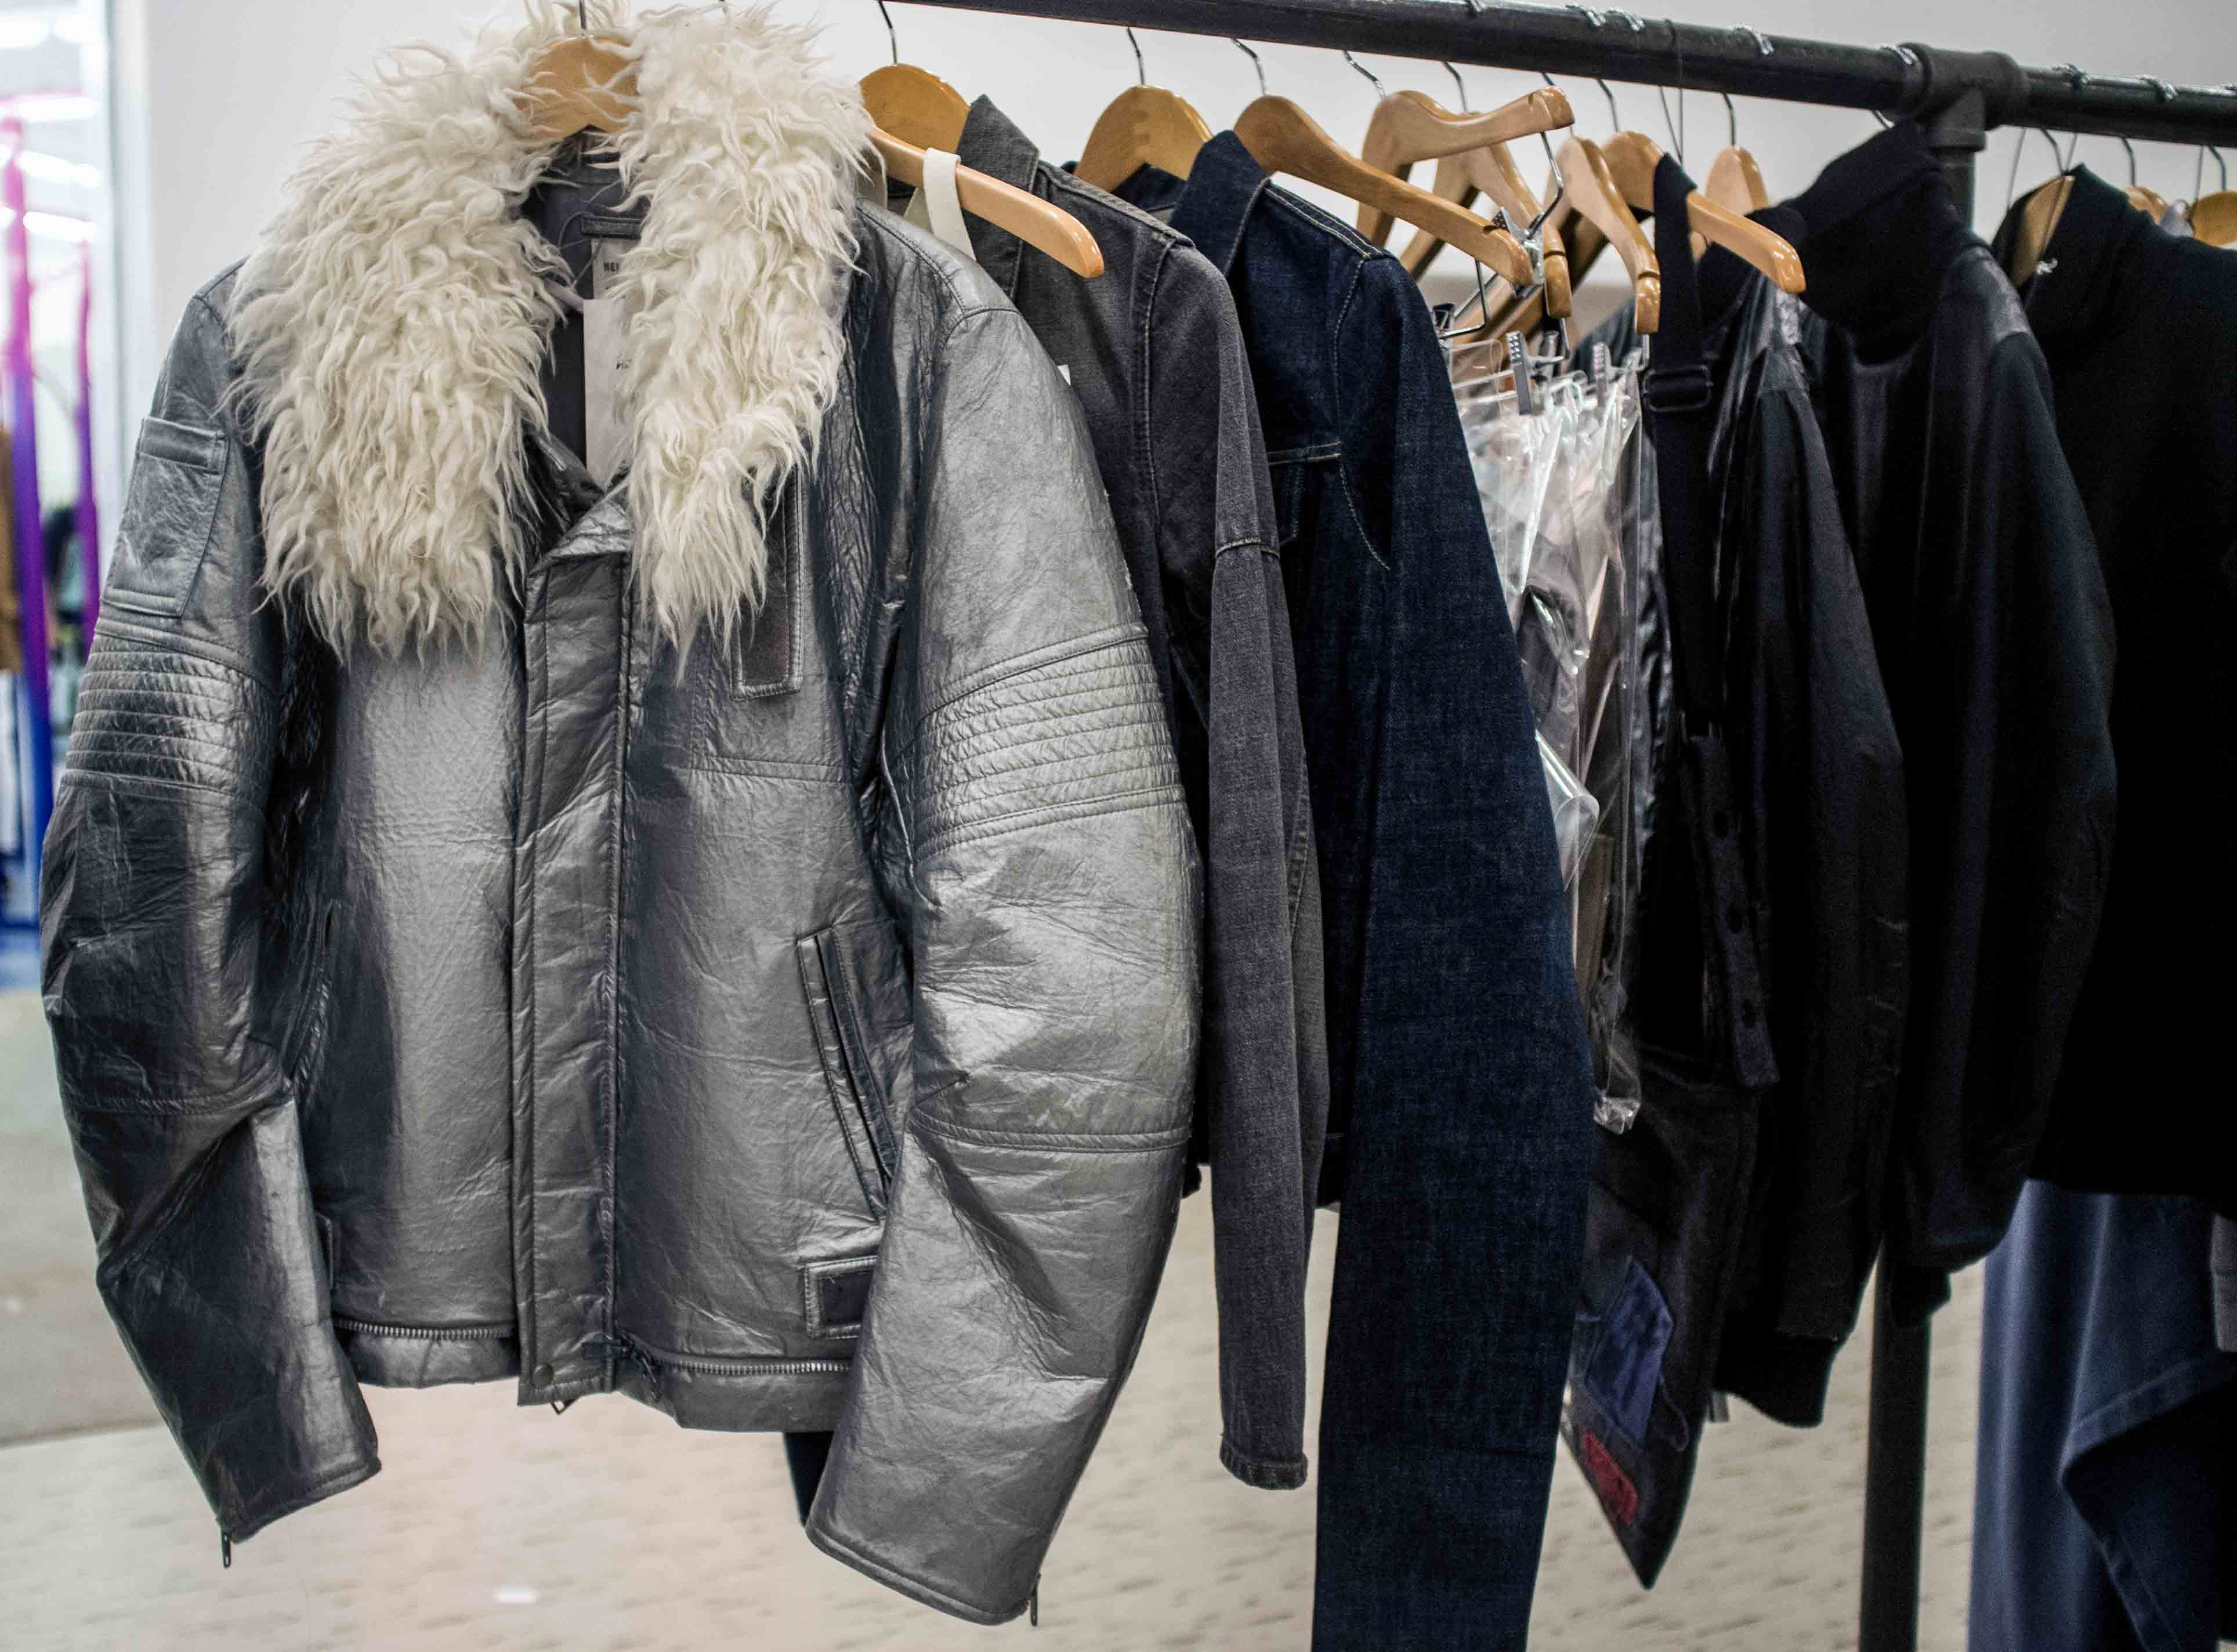 Byronesque Brings Vintage Raf Simons, Helmut Lang, and Martin Margiela to Opening Ceremony - retail fashion - vintage fashion Raf Simons opening ceremony Maison Martin Margiela helmut lang Fashion byronesque 2017